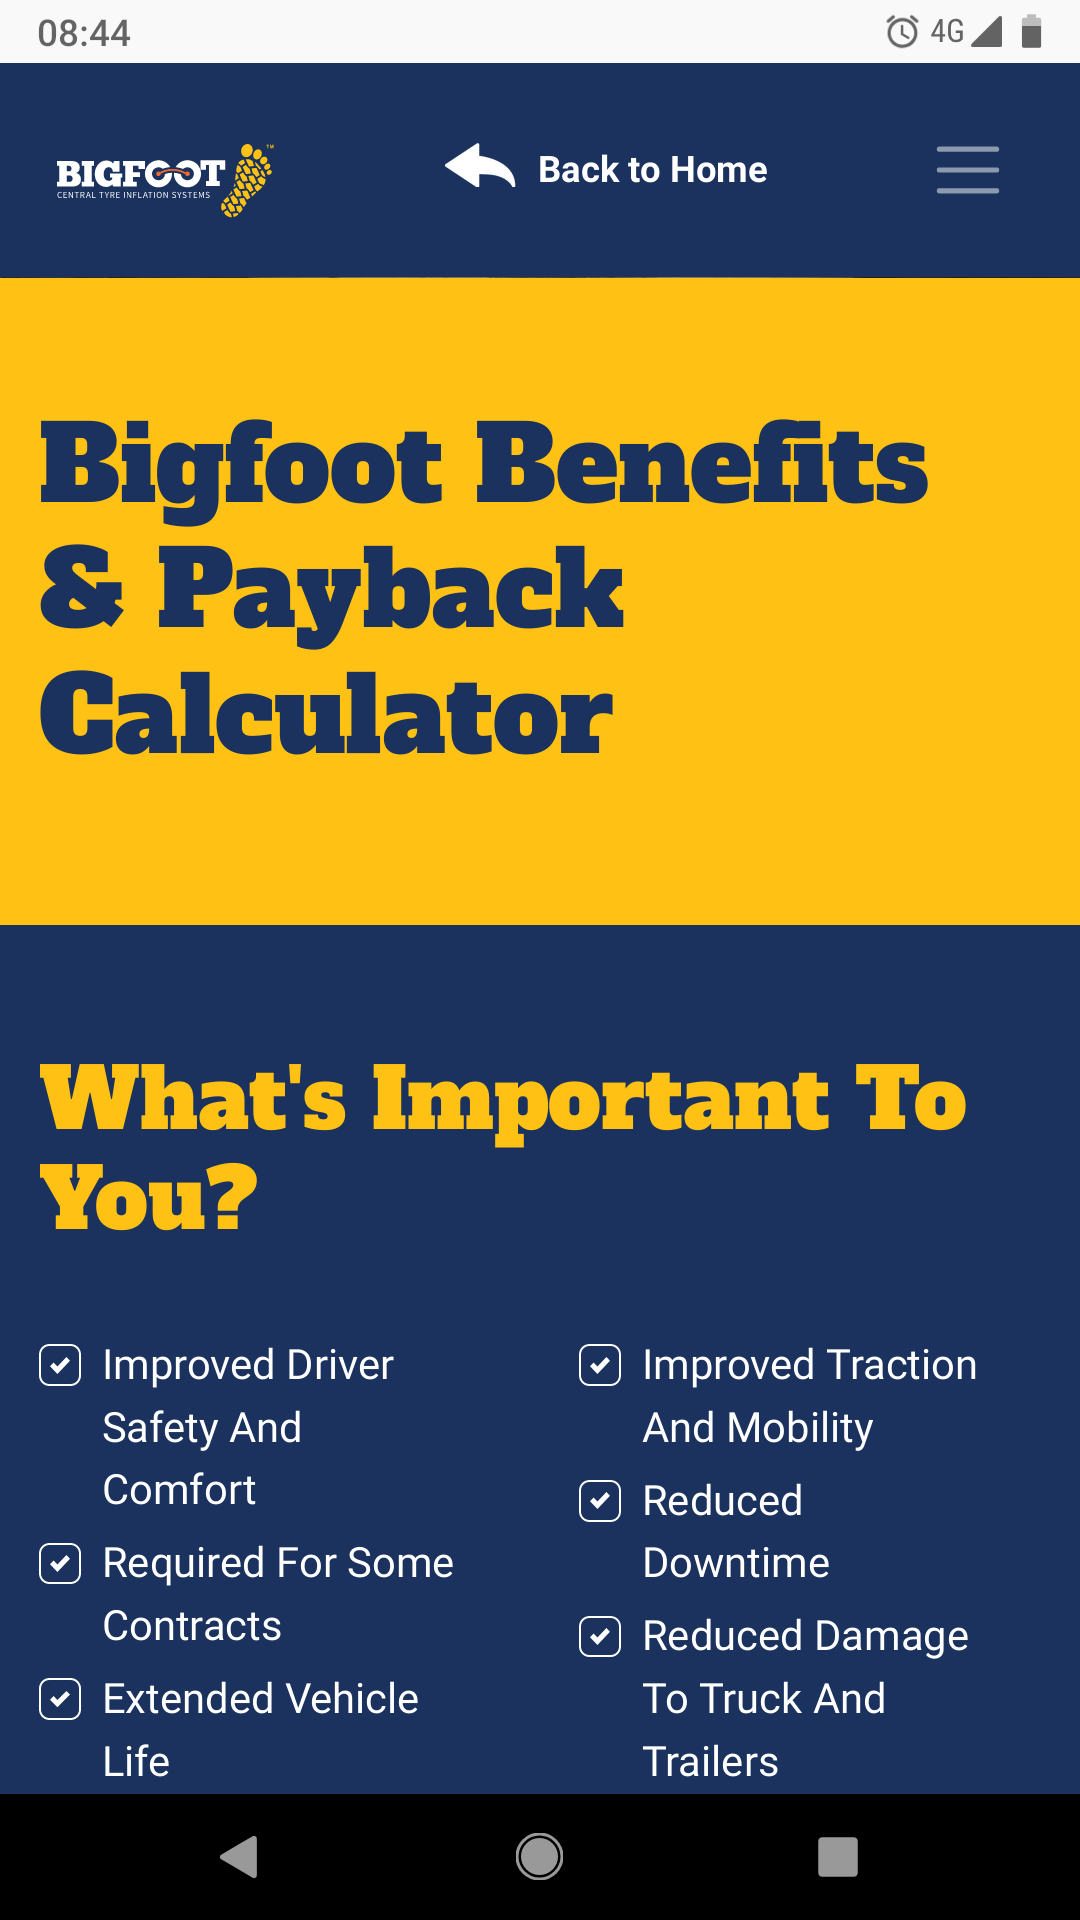 Bigfoot Benefits & Payback Calculator Image